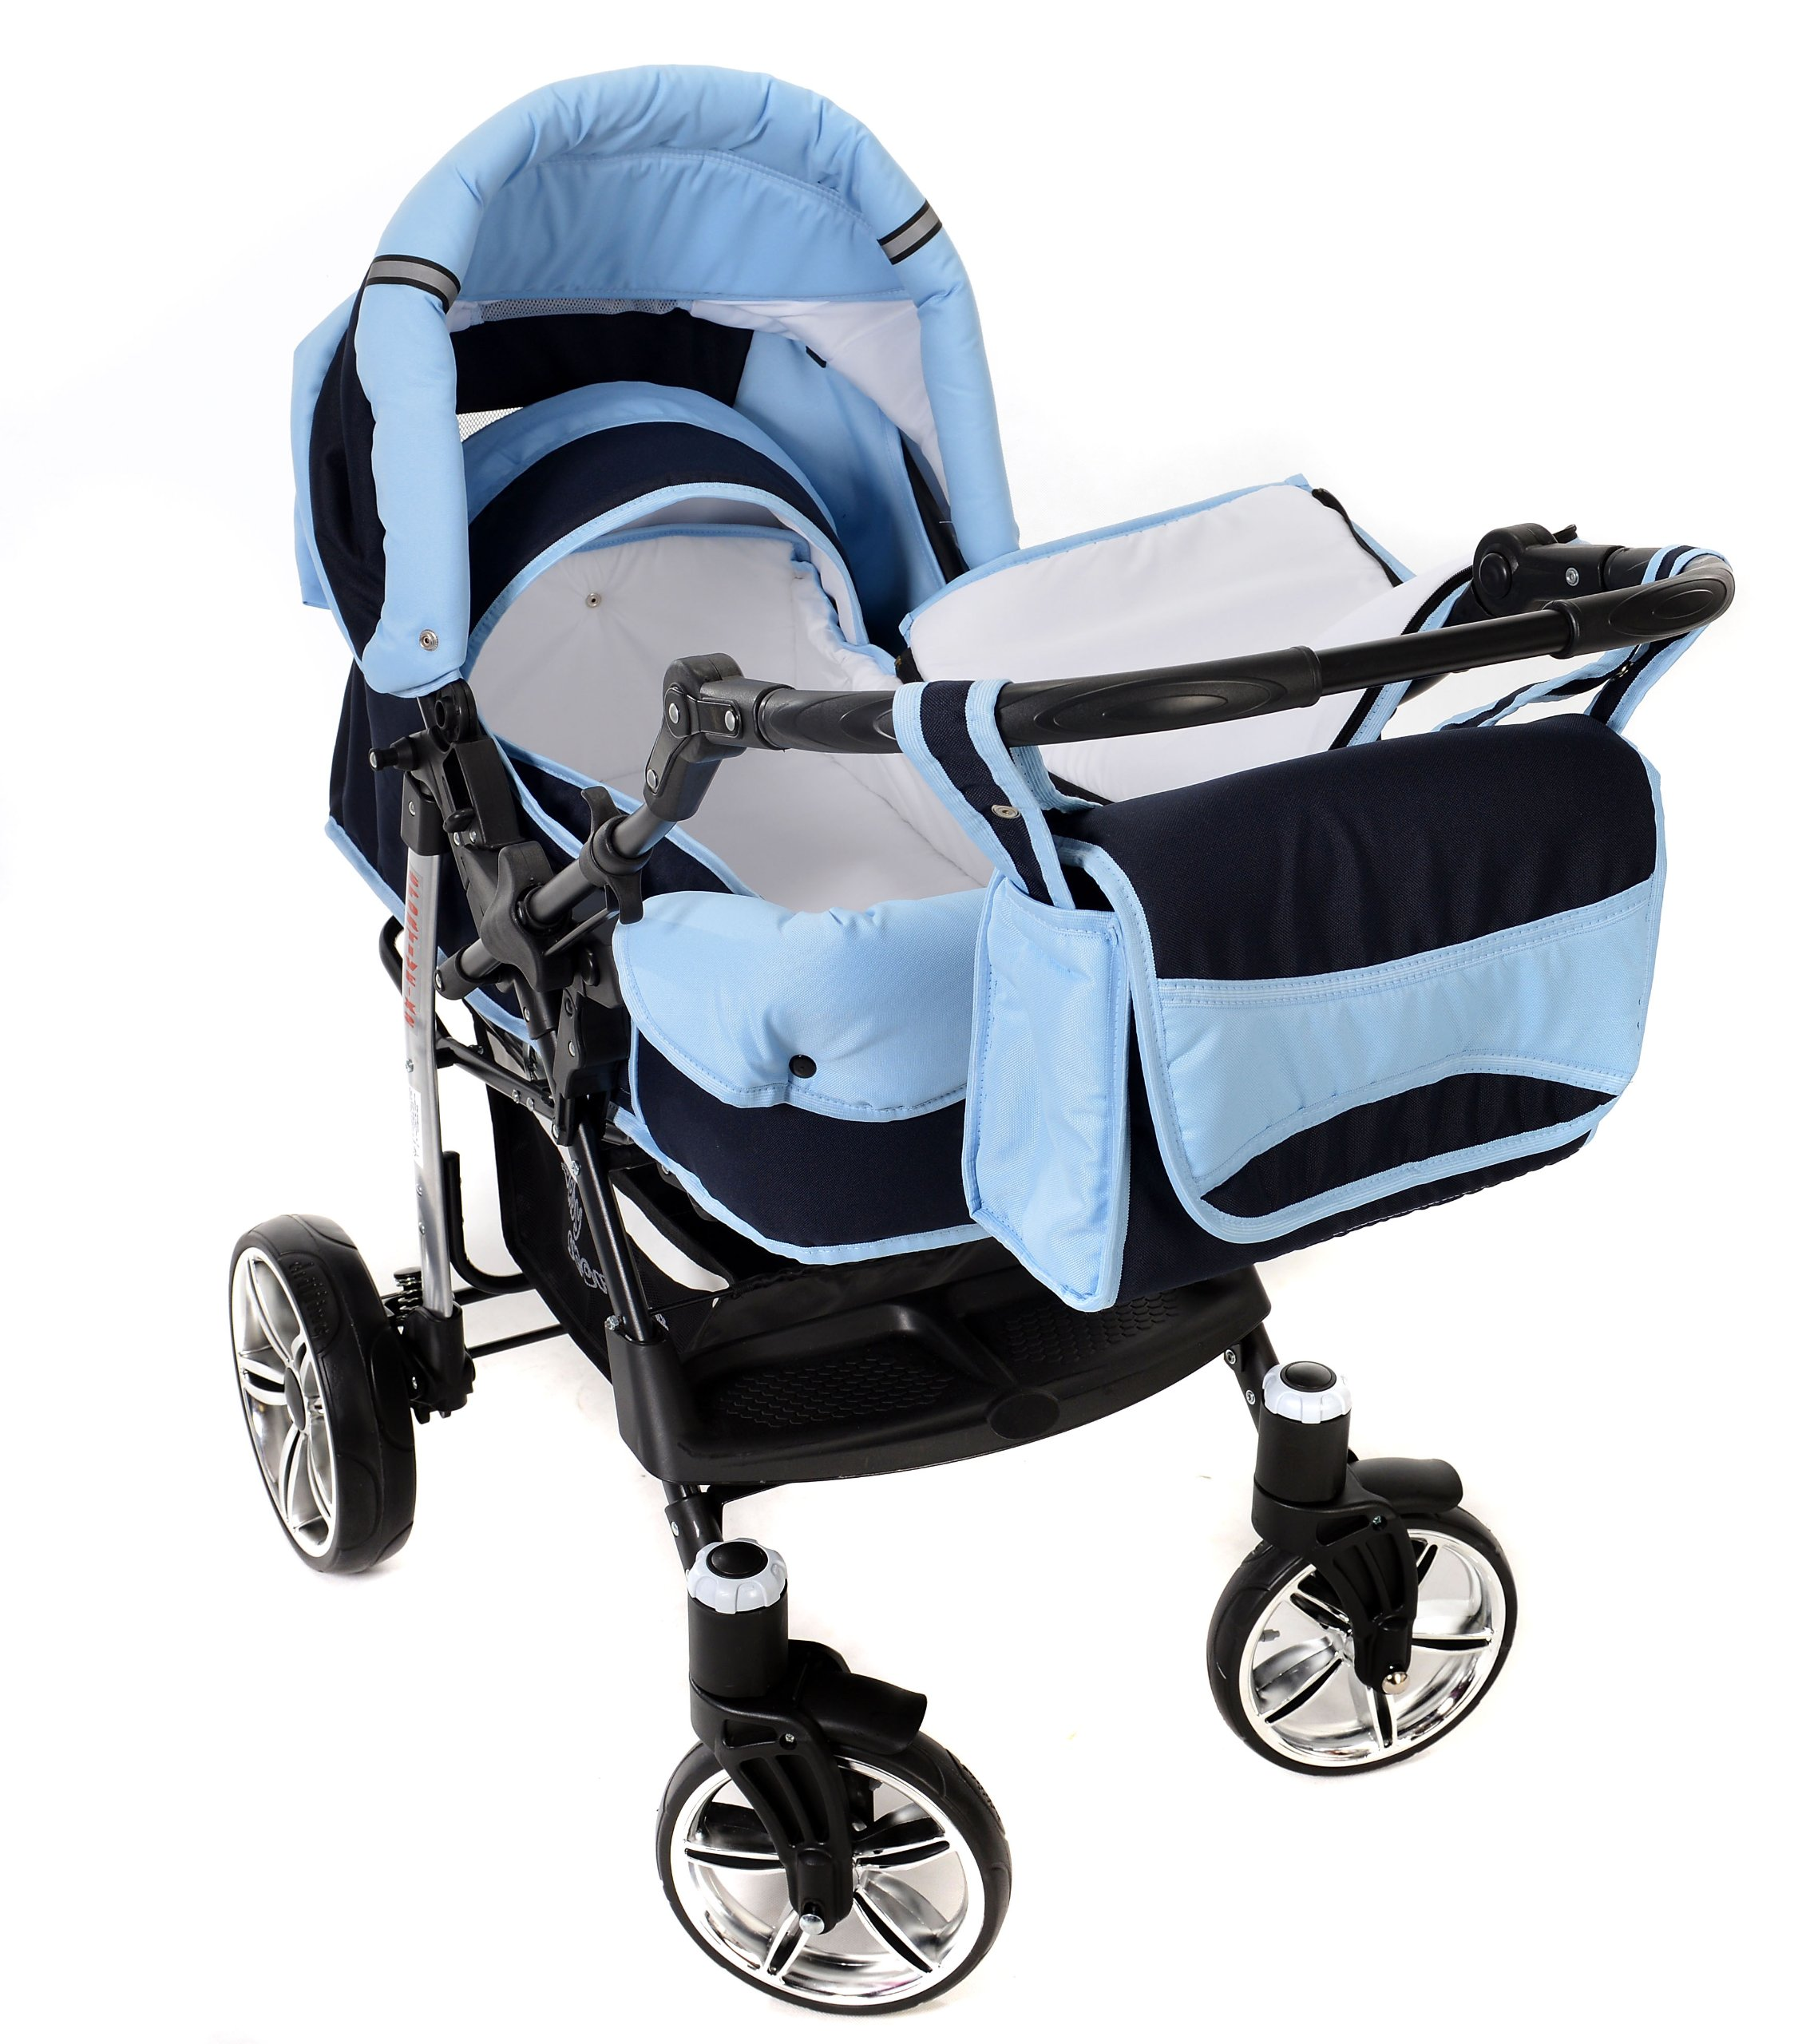 Sportive X2, 3-in-1 Travel System incl. Baby Pram with Swivel Wheels, Car Seat, Pushchair & Accessories (3-in-1 Travel System, Navy-Blue & Blue)  3 in 1 Travel System All in One Set - Pram, Car Carrier Seat and Sport Buggy + Accessories: carrier bag, rain protection, mosquito net, changing mat, removable bottle holder and removable tray for your child's bits and pieces Suitable from birth, Easy Quick Folding System; Large storage basket; Turnable handle bar that allows to face or rear the drive direction; Quick release rear wheels for easy cleaning after muddy walks Front lockable 360o swivel wheels for manoeuvrability , Small sized when folded, fits into many small car trunks, Carry-cot with a removable hood, Reflective elements for better visibility 8